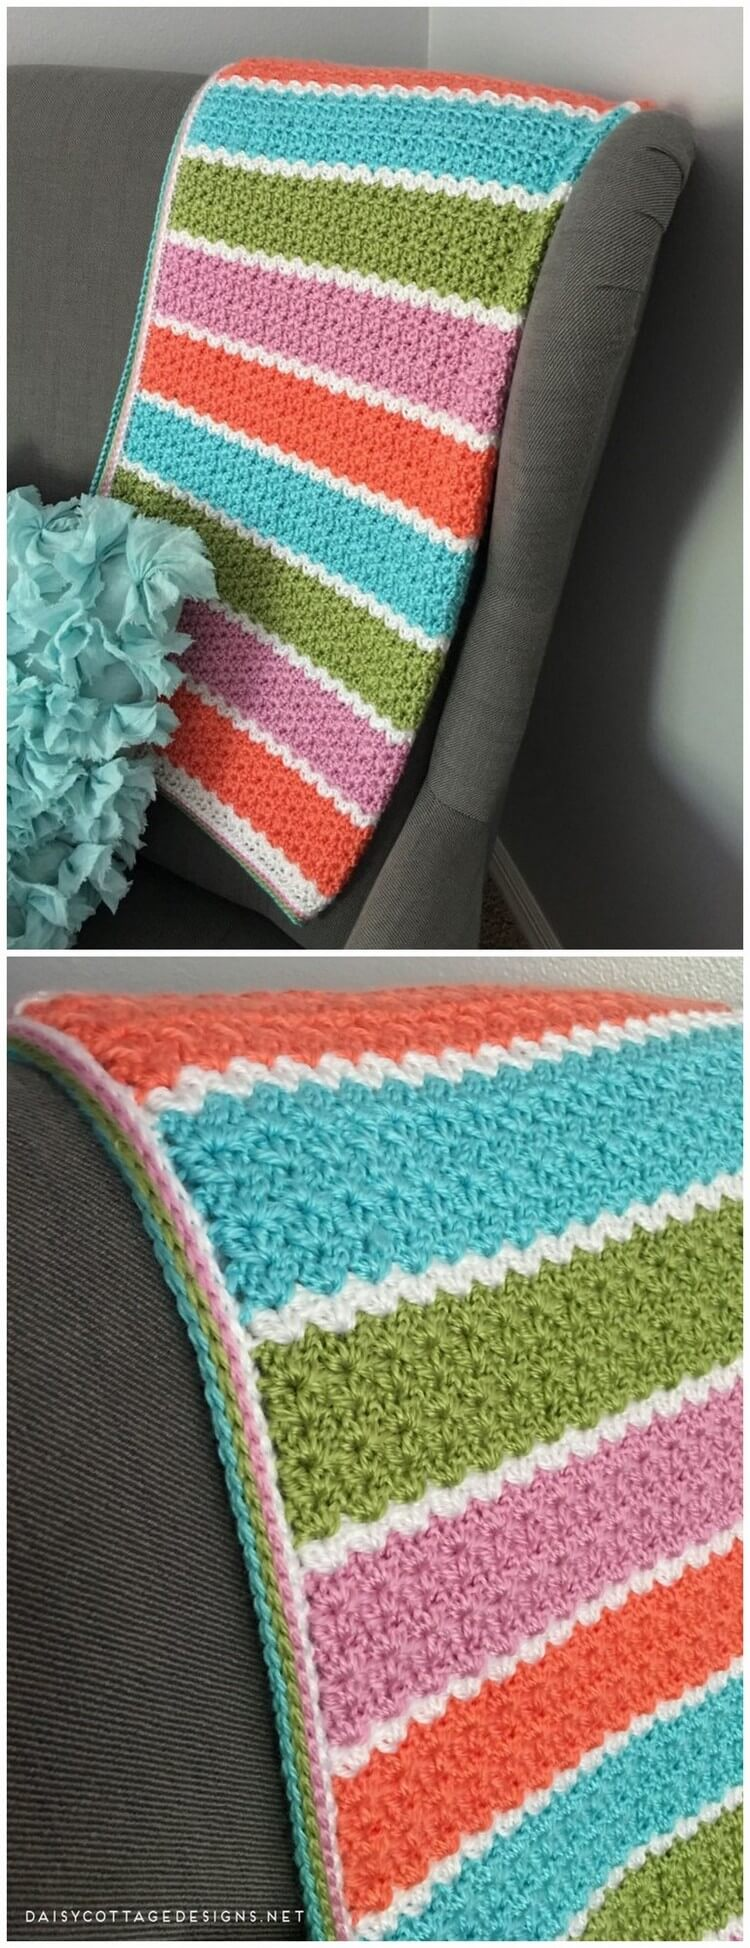 Crochet Blanket Pattern (52)